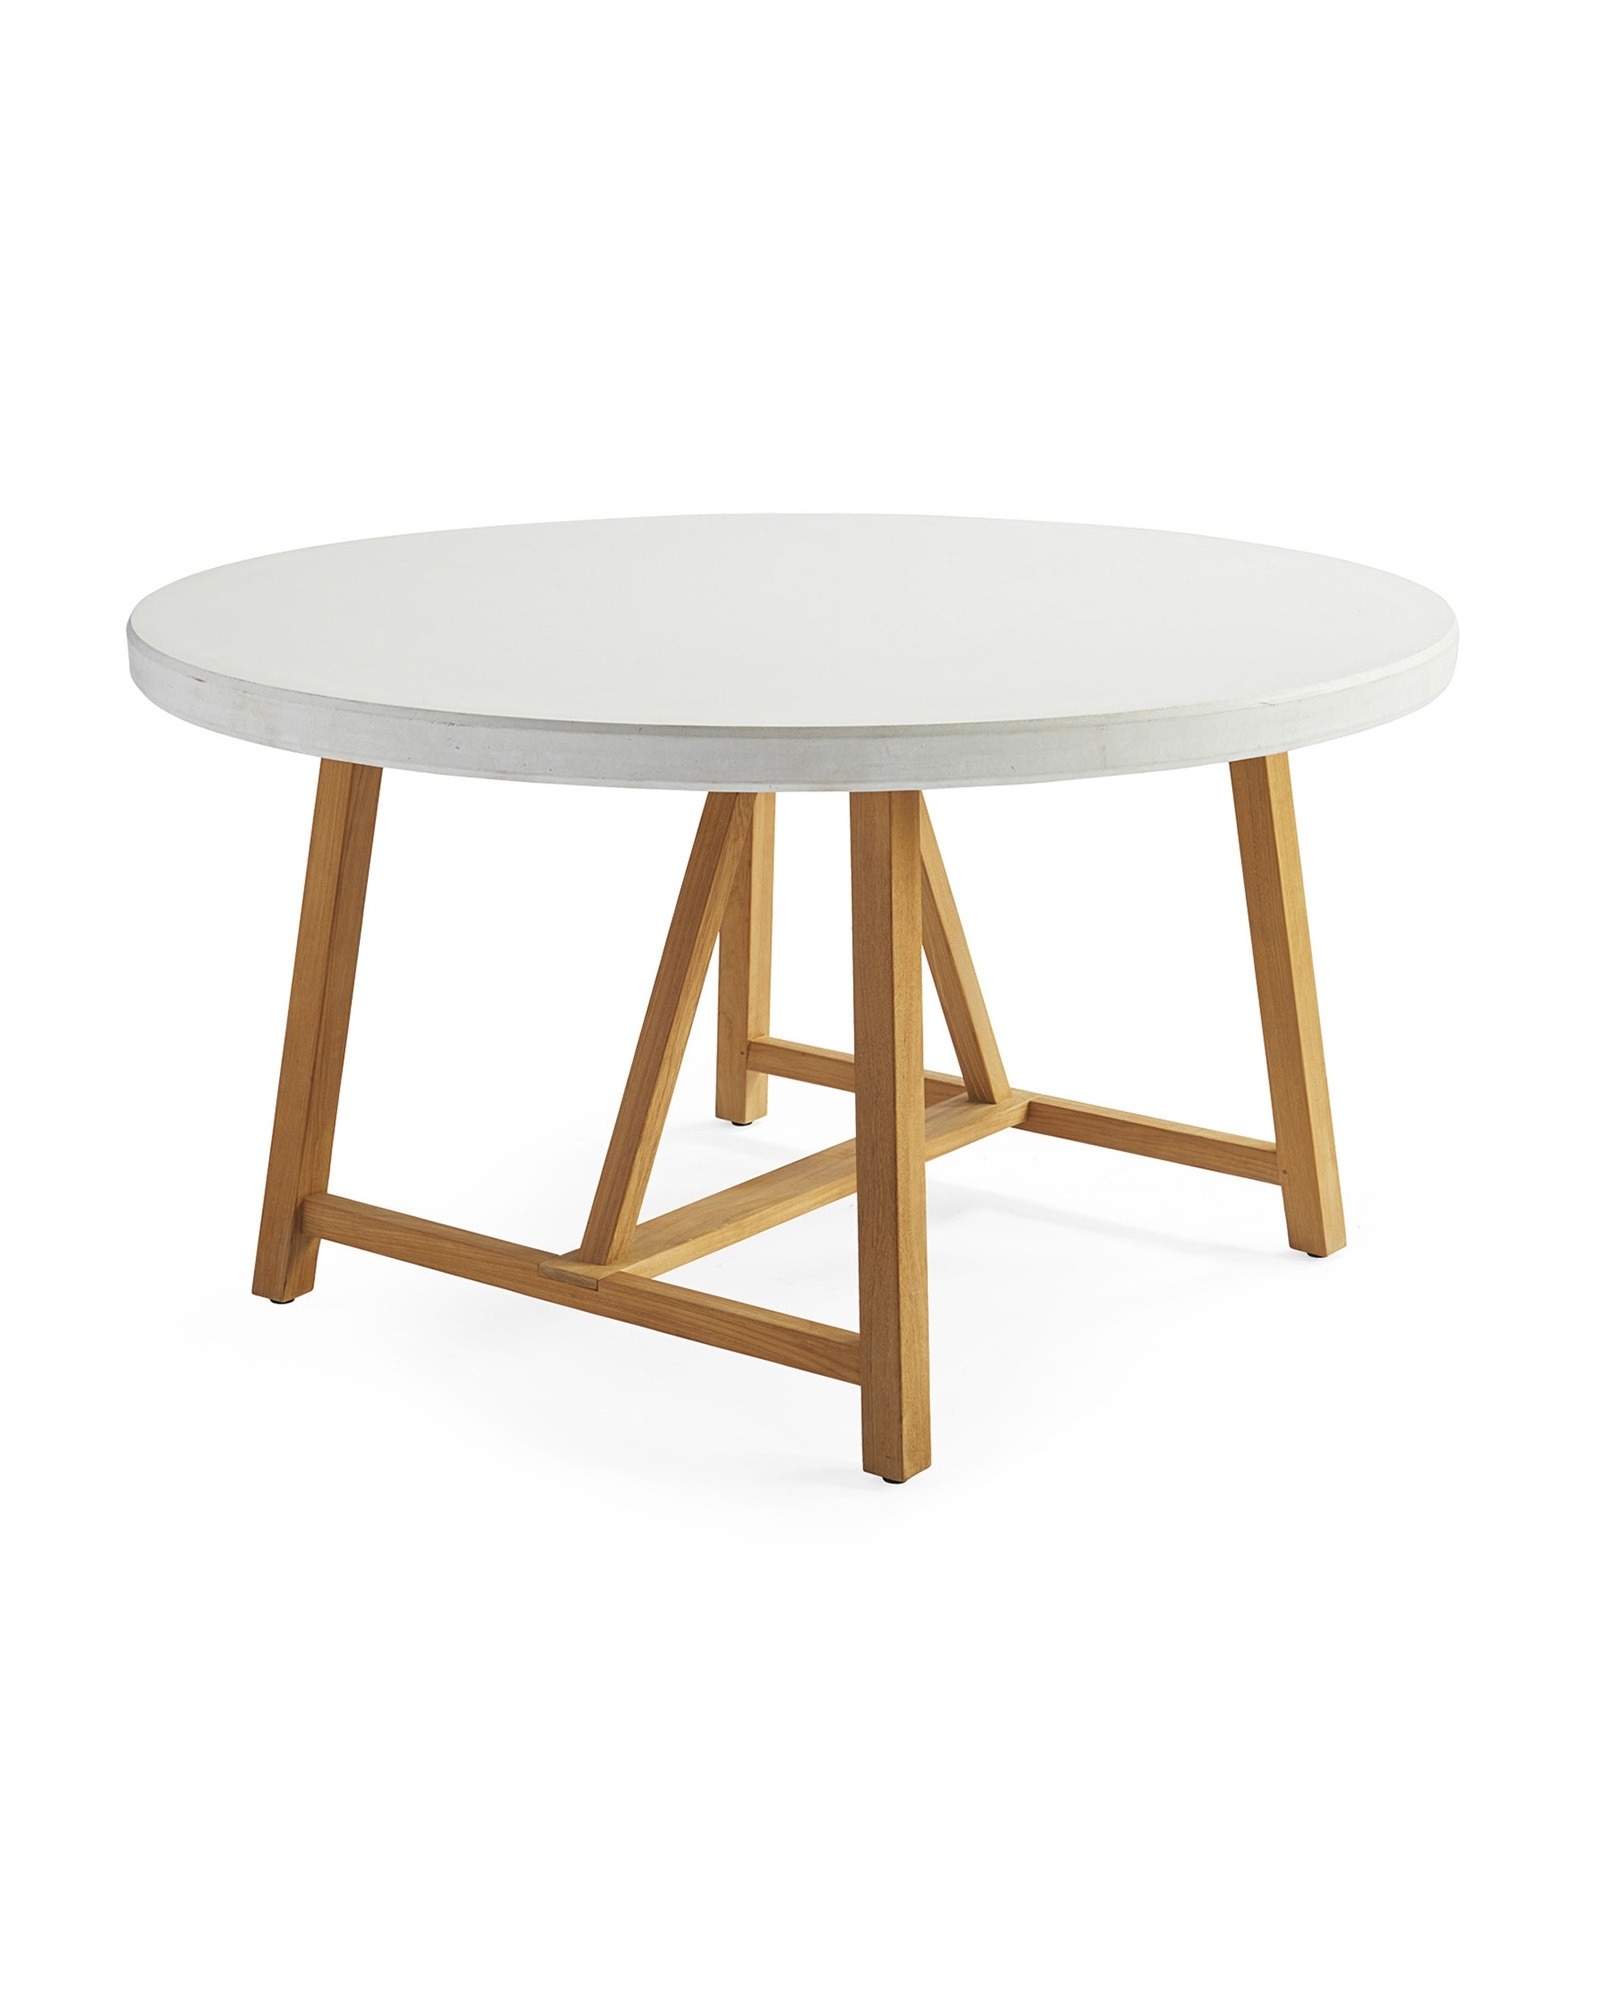 Round Teak Dining Tables Pertaining To Favorite Terrace Teak Dining Table – Serena & Lily (View 15 of 25)